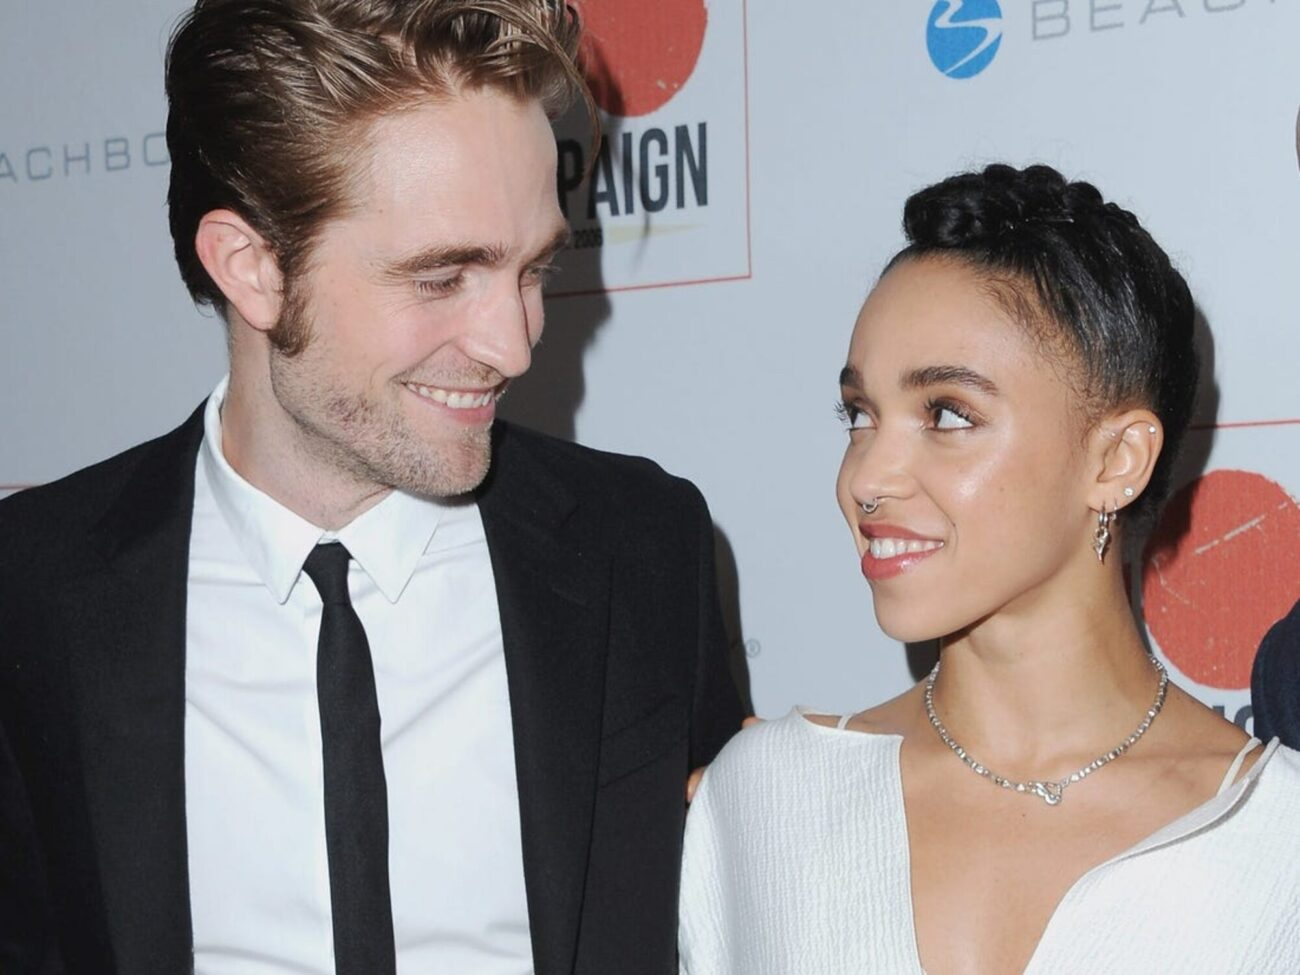 After dating Robert Pattinson, FKA twigs opened up about the racial abuse she endured from some of his crazy fans. Here's what went down.